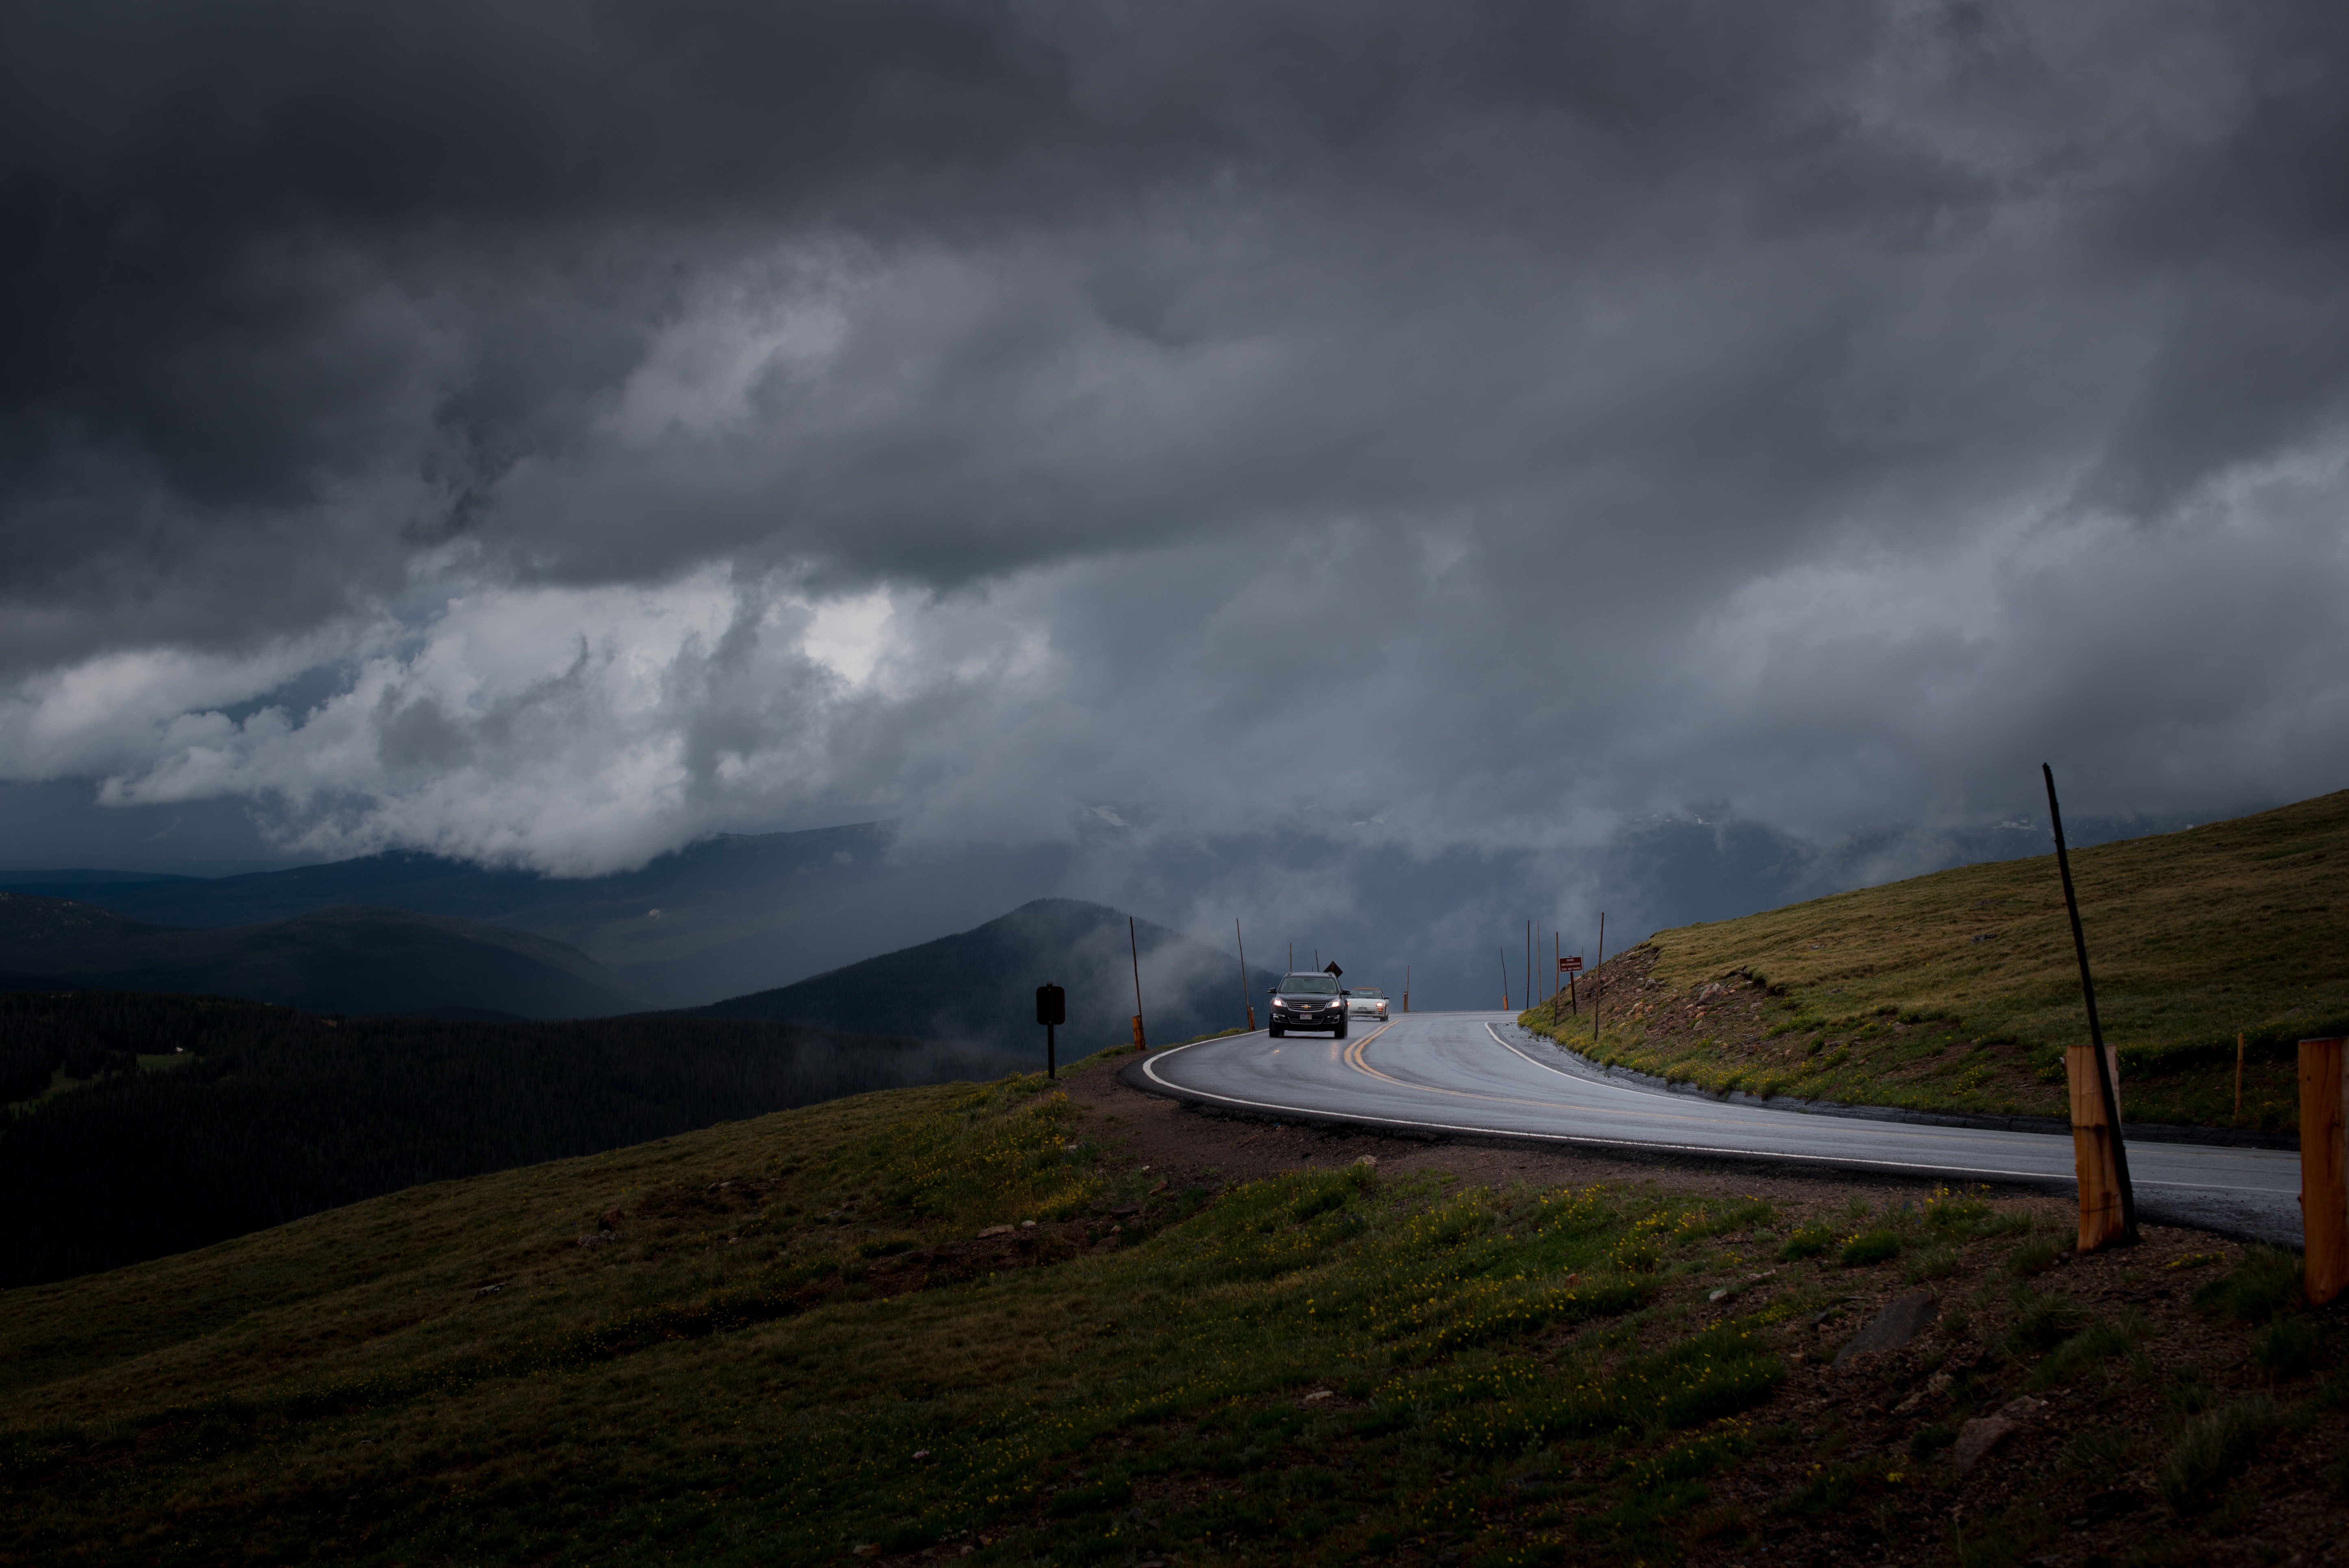 Cars on a curve in a road along a green hill on a cloudy day